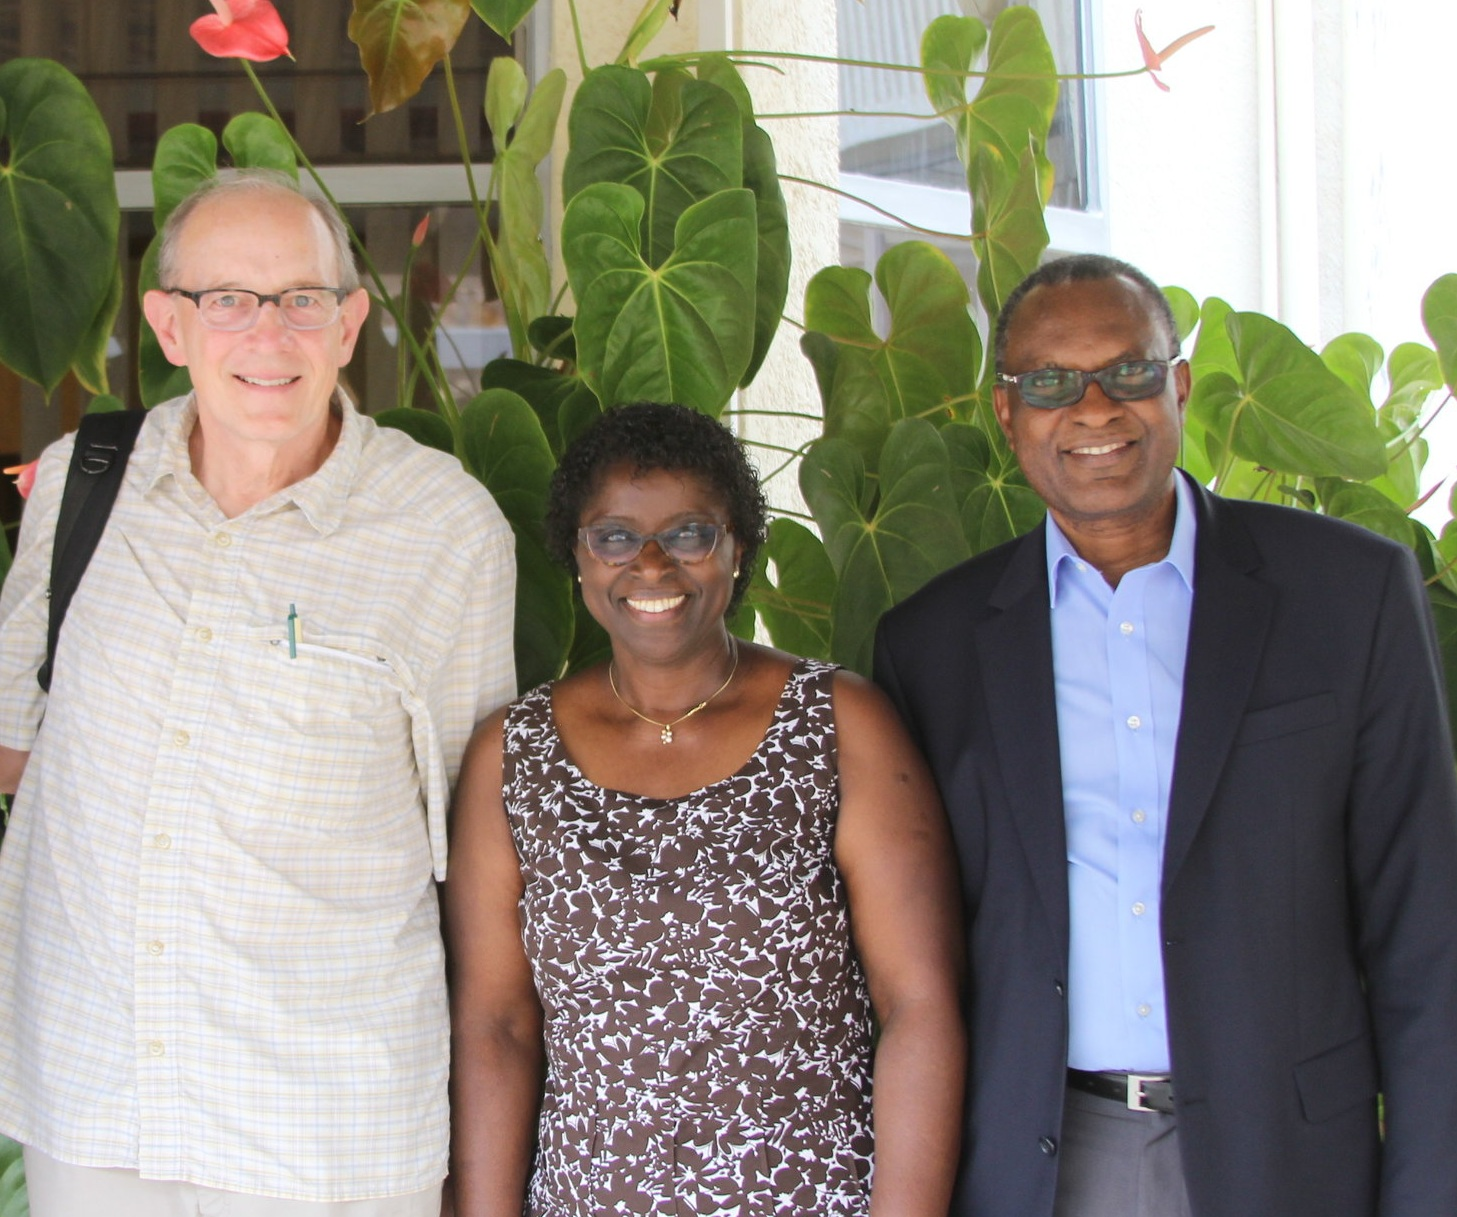 Outreach Executive Director Rob Weingartner, Projects Coordinator Ebralie Mwizerwa and  PIASS Vice-Chancellor Rev. Dr. Elise Musemakweli